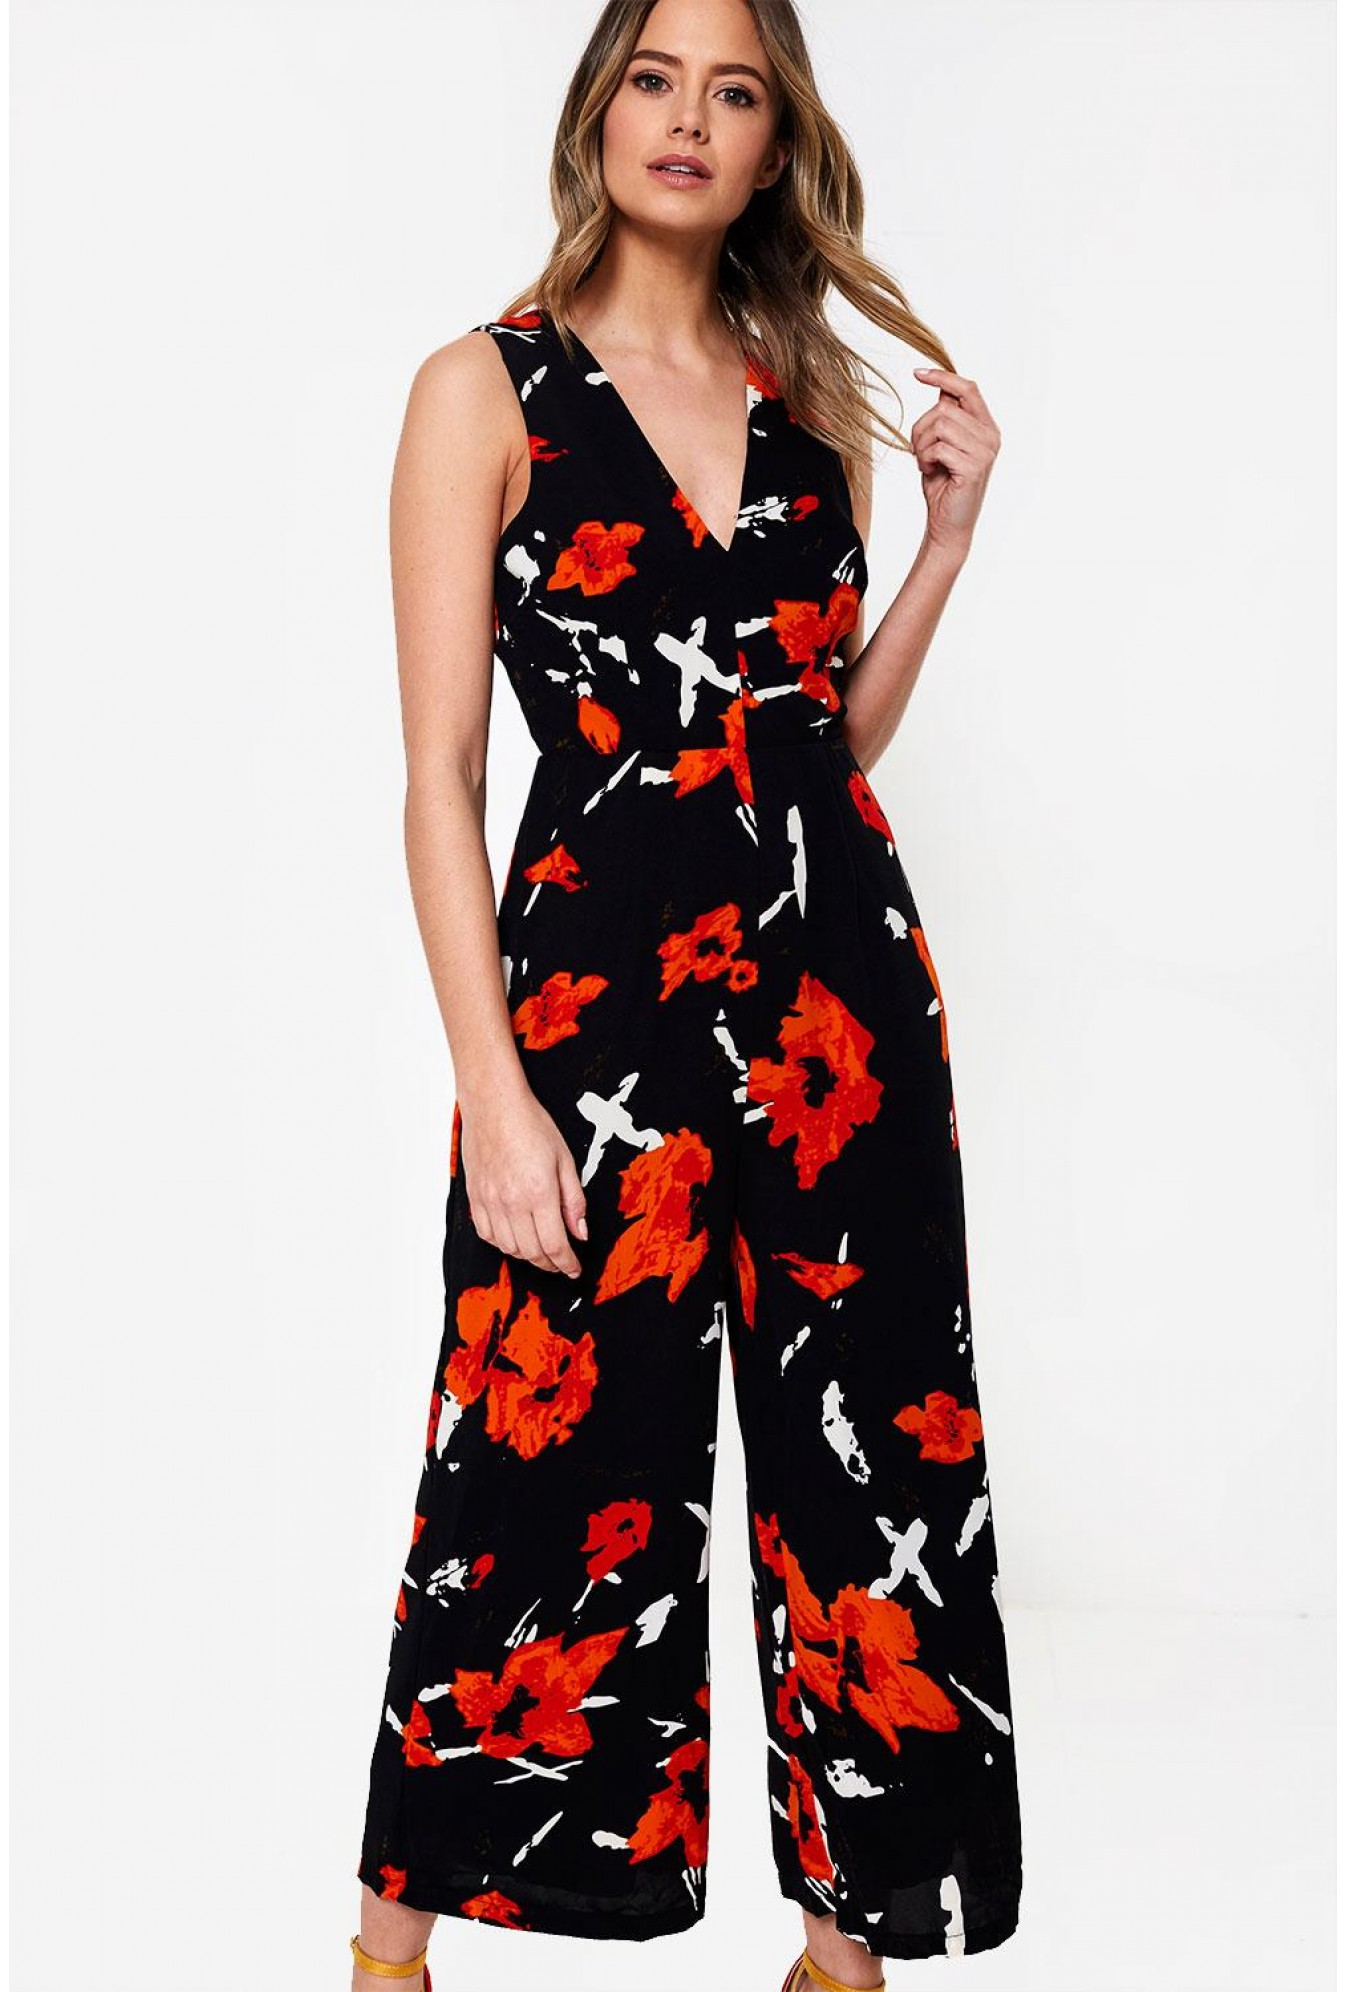 2f35489cd8d2 Polly Floral Print V Neck Culotte Jumpsuit in Black